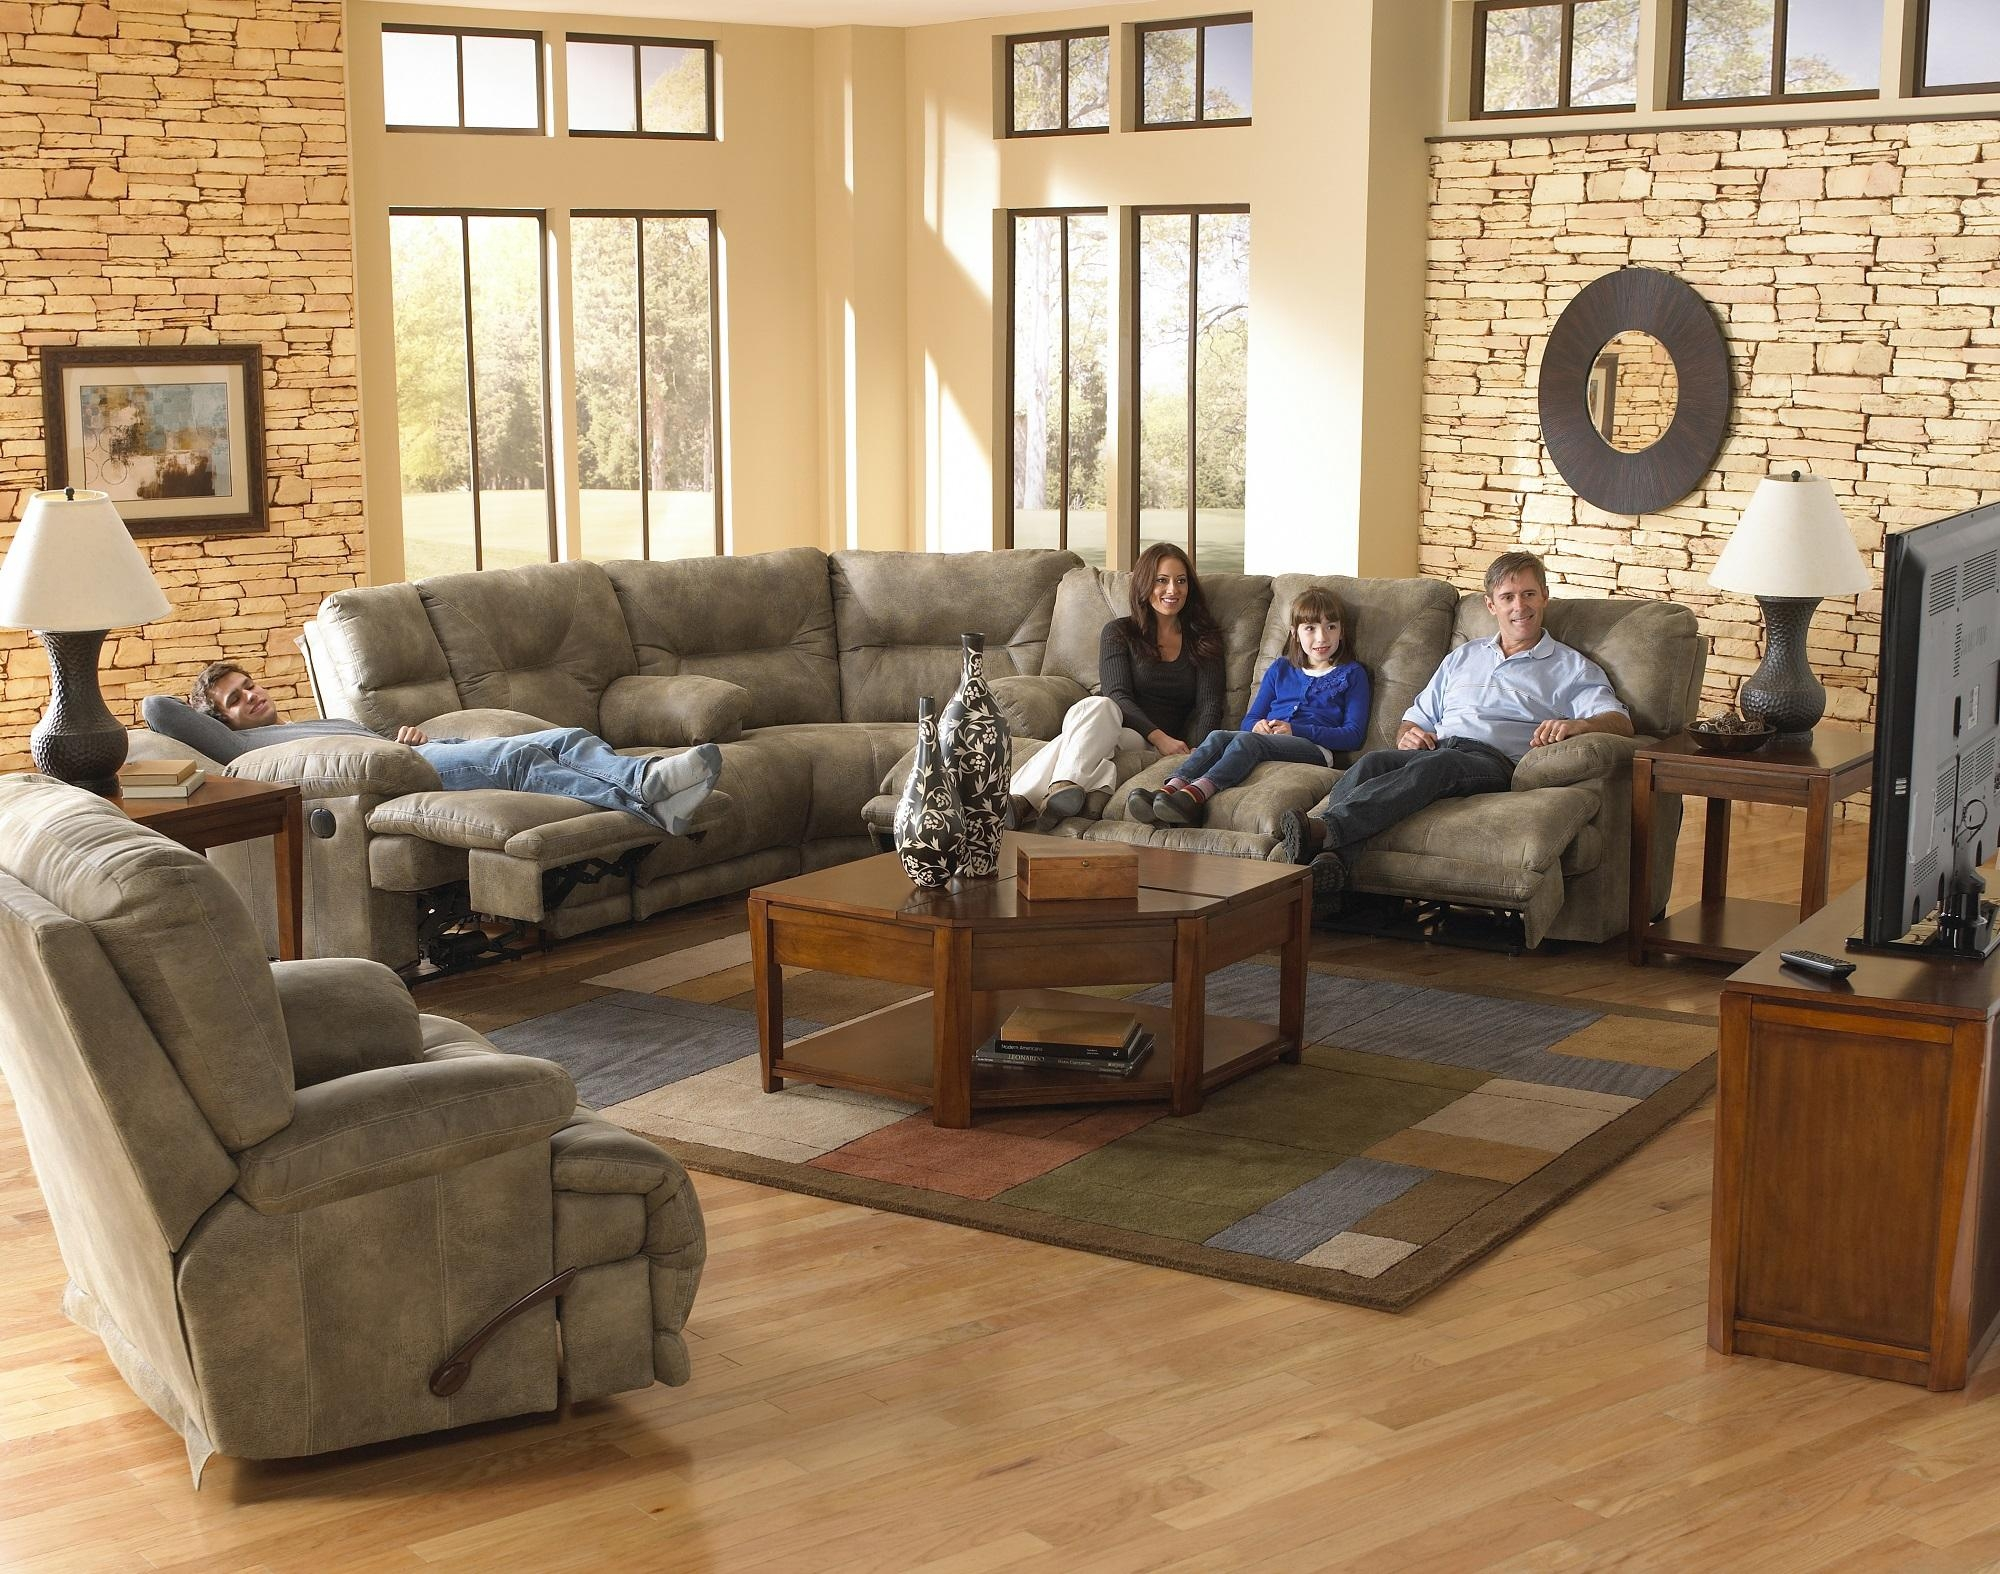 Voyager Power Reclining Sectional Sofacatnapper in Catnapper Recliner Sofas